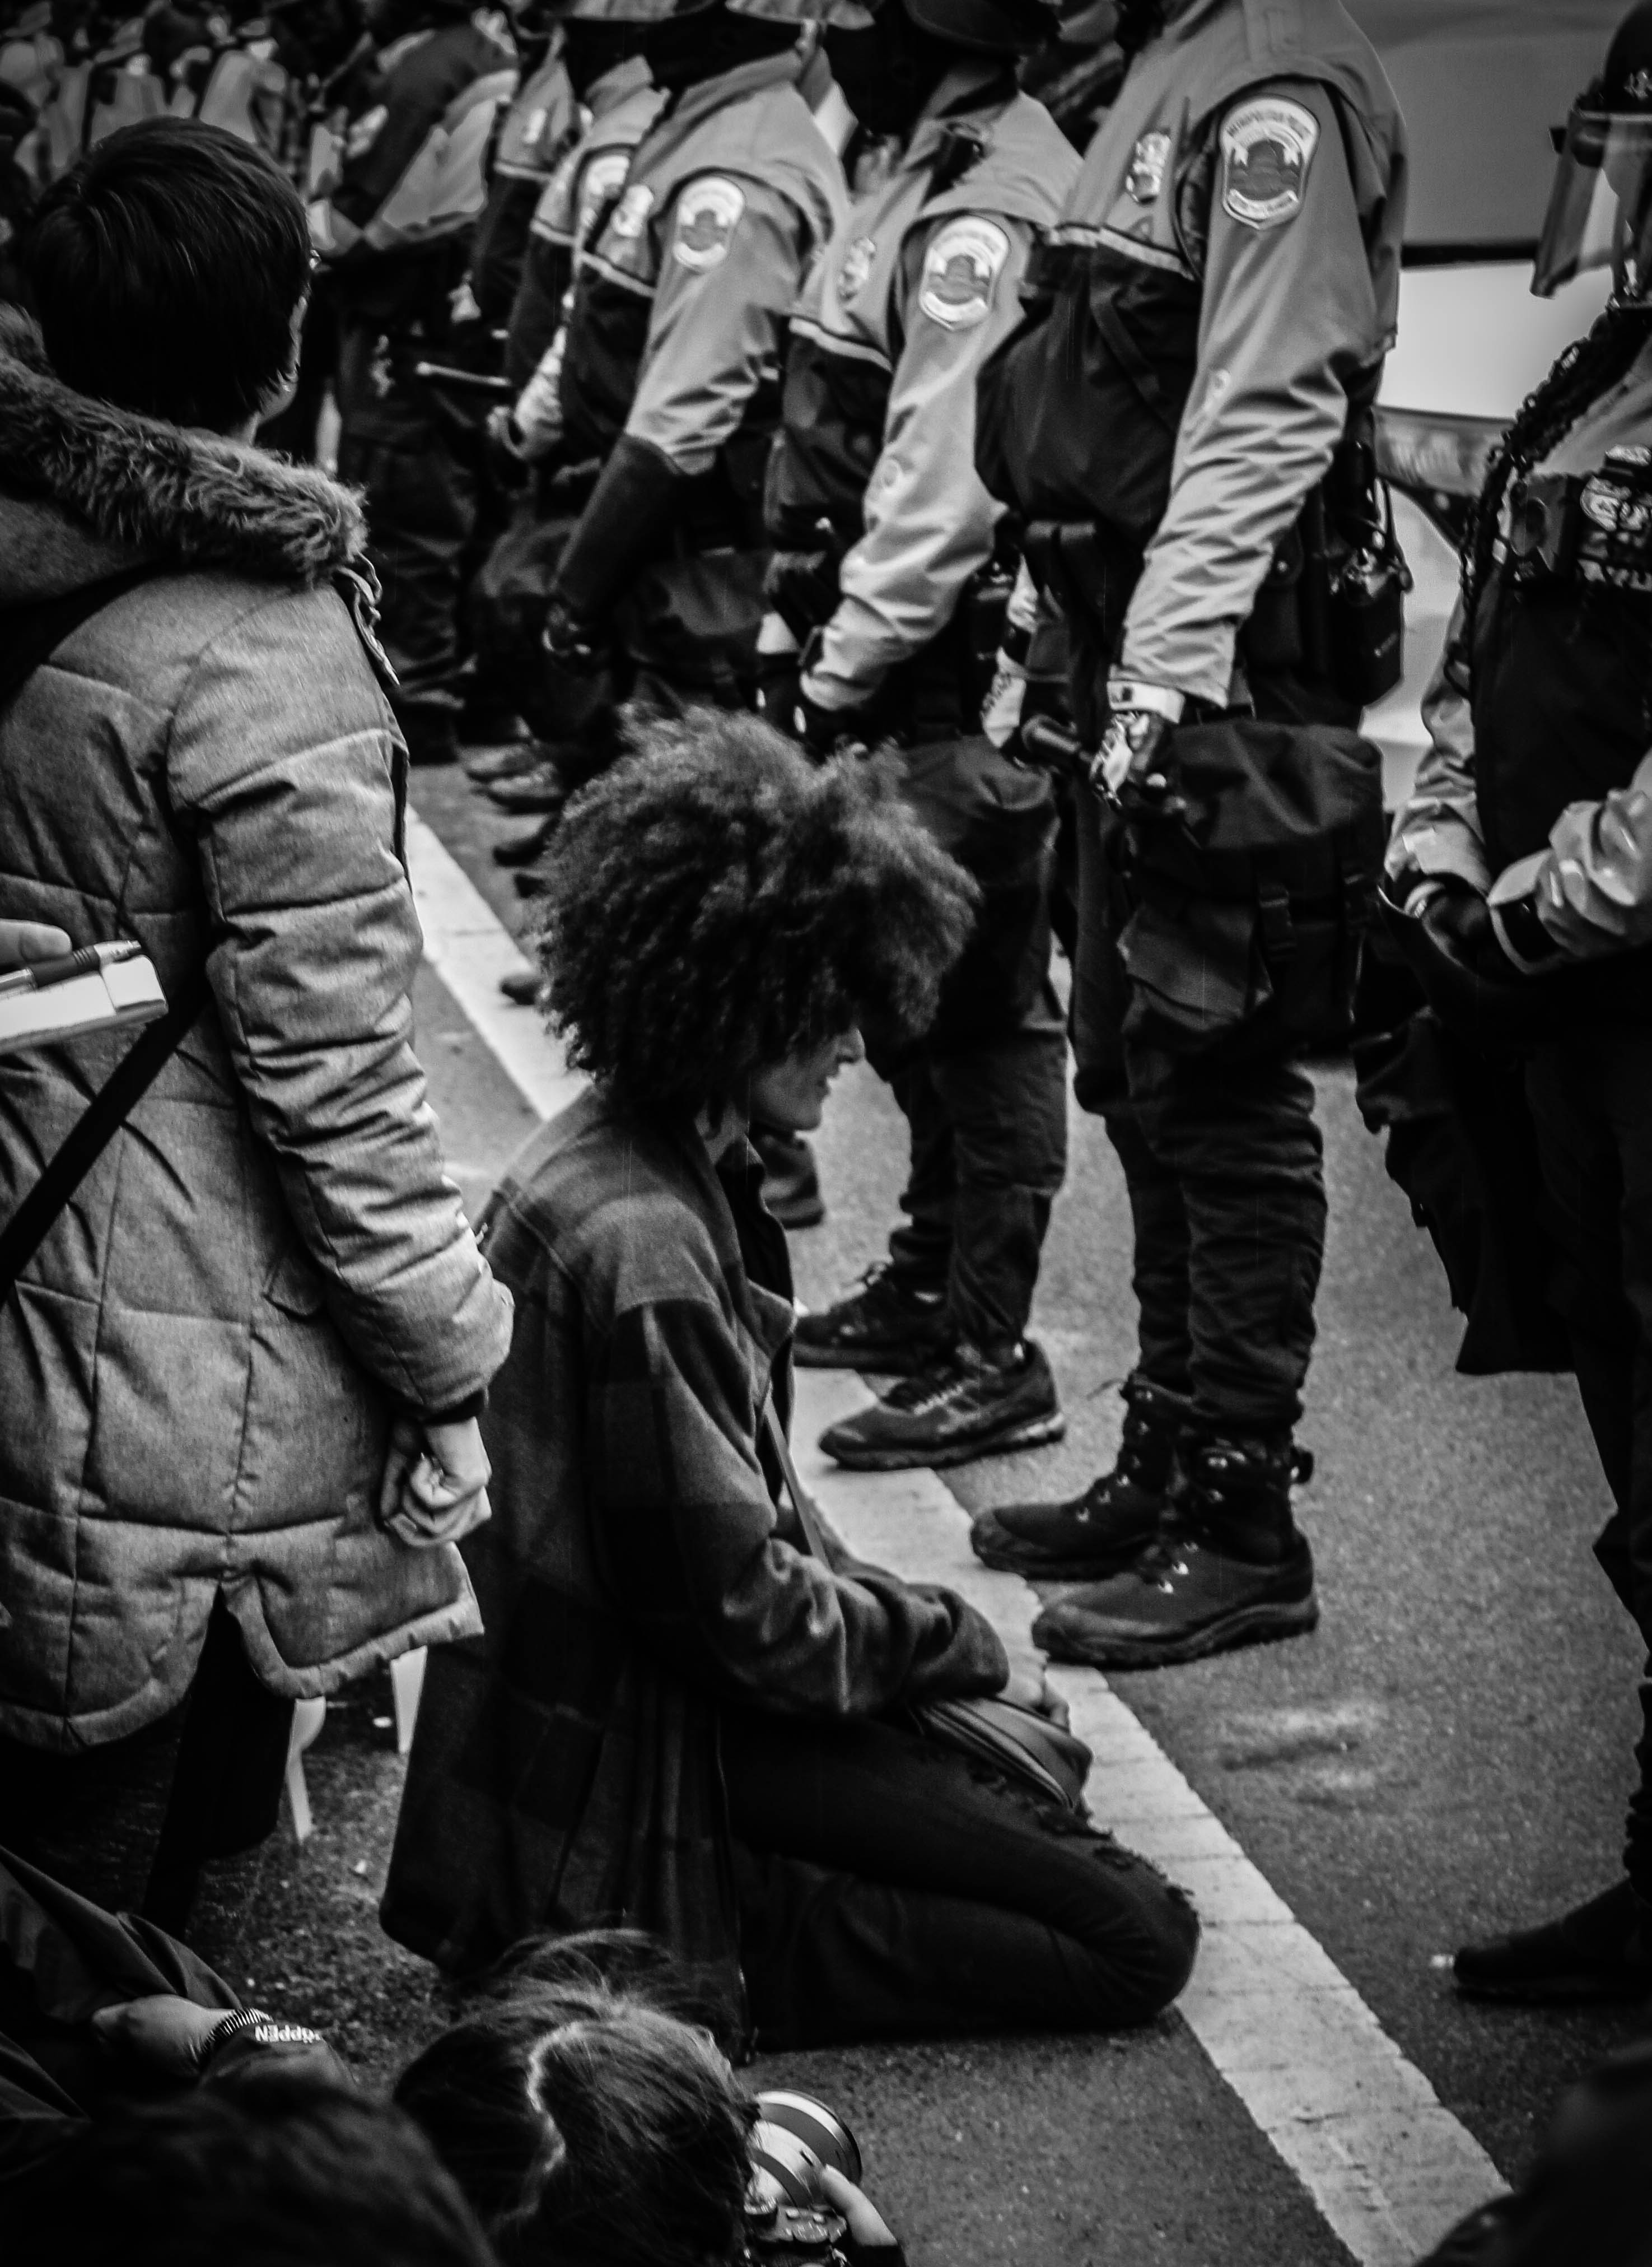 person kneeling before police officers